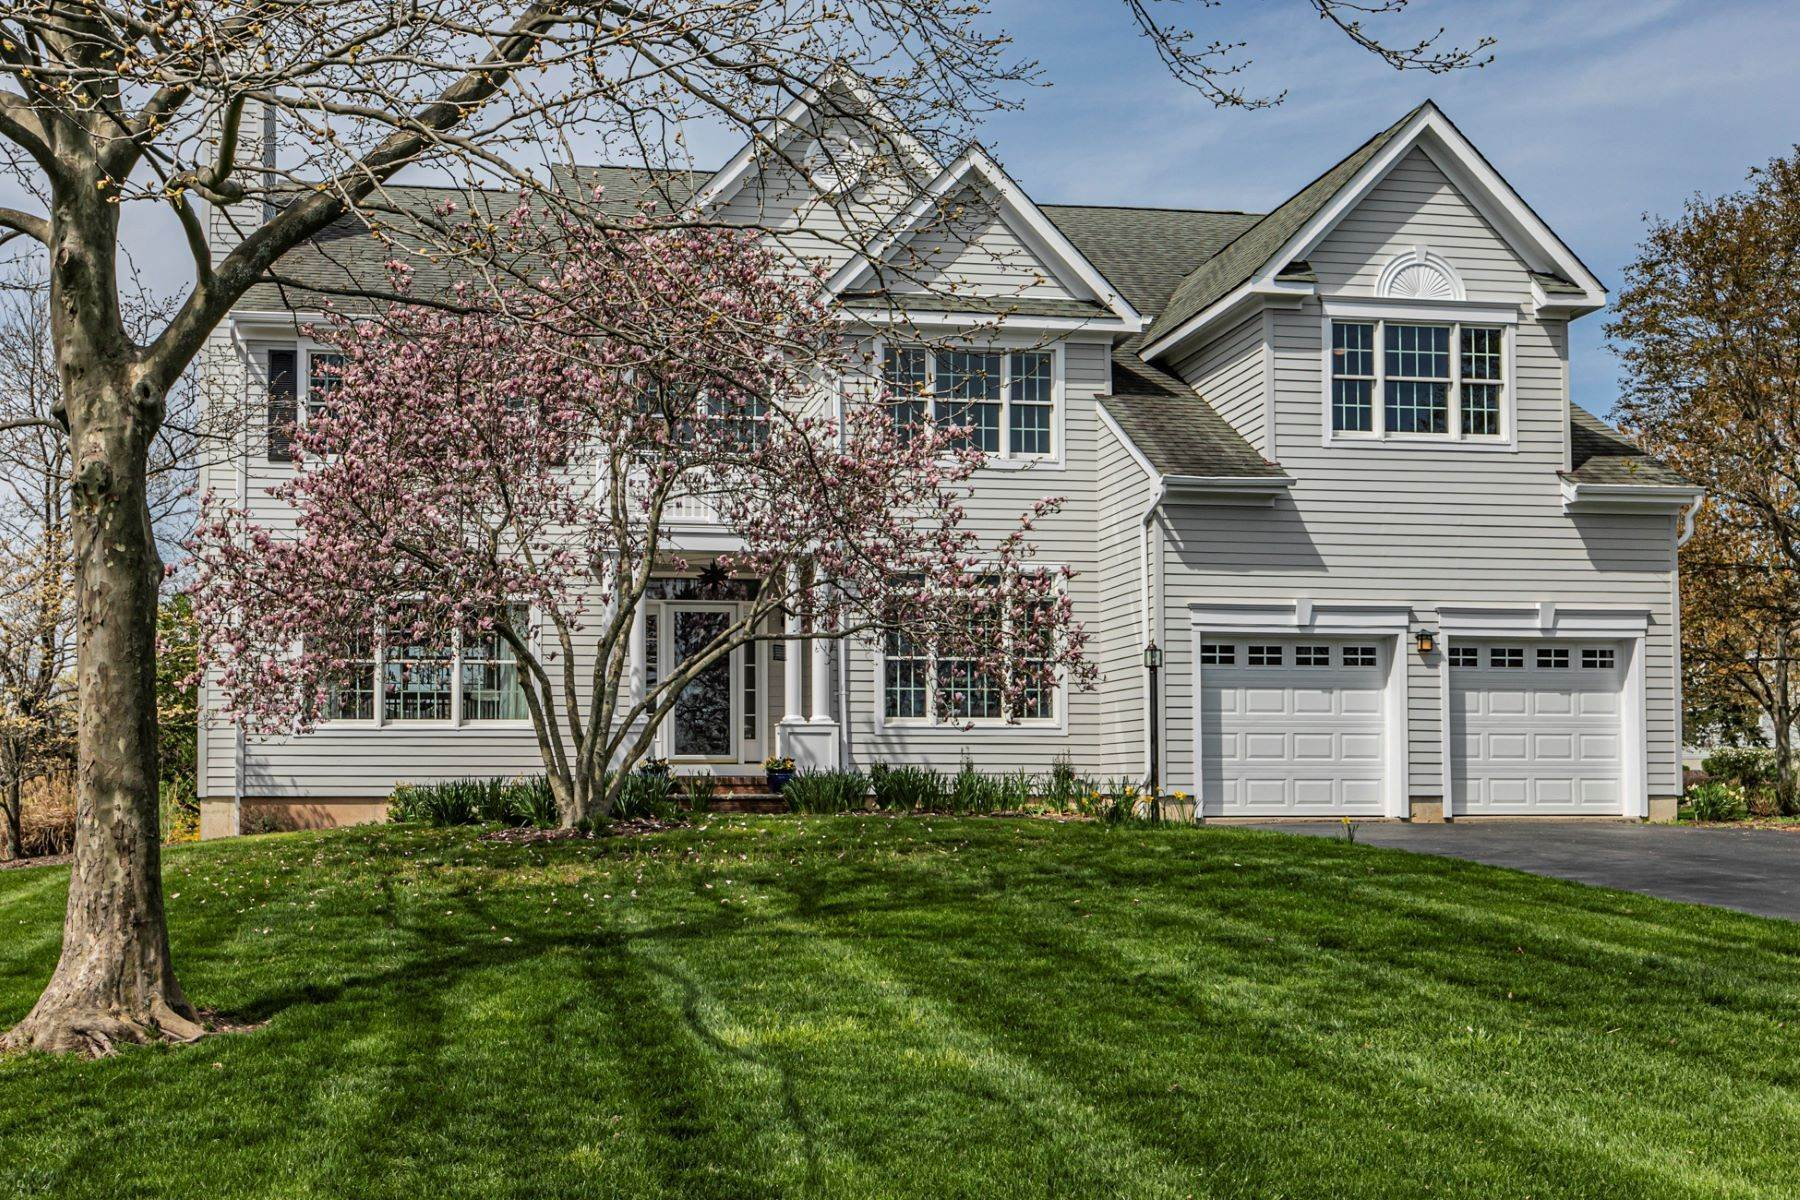 Single Family Homes for Sale at Warm and Inviting With Stunning Golf Course Views 7 Prairie Dunes Court Skillman, New Jersey 08558 United States